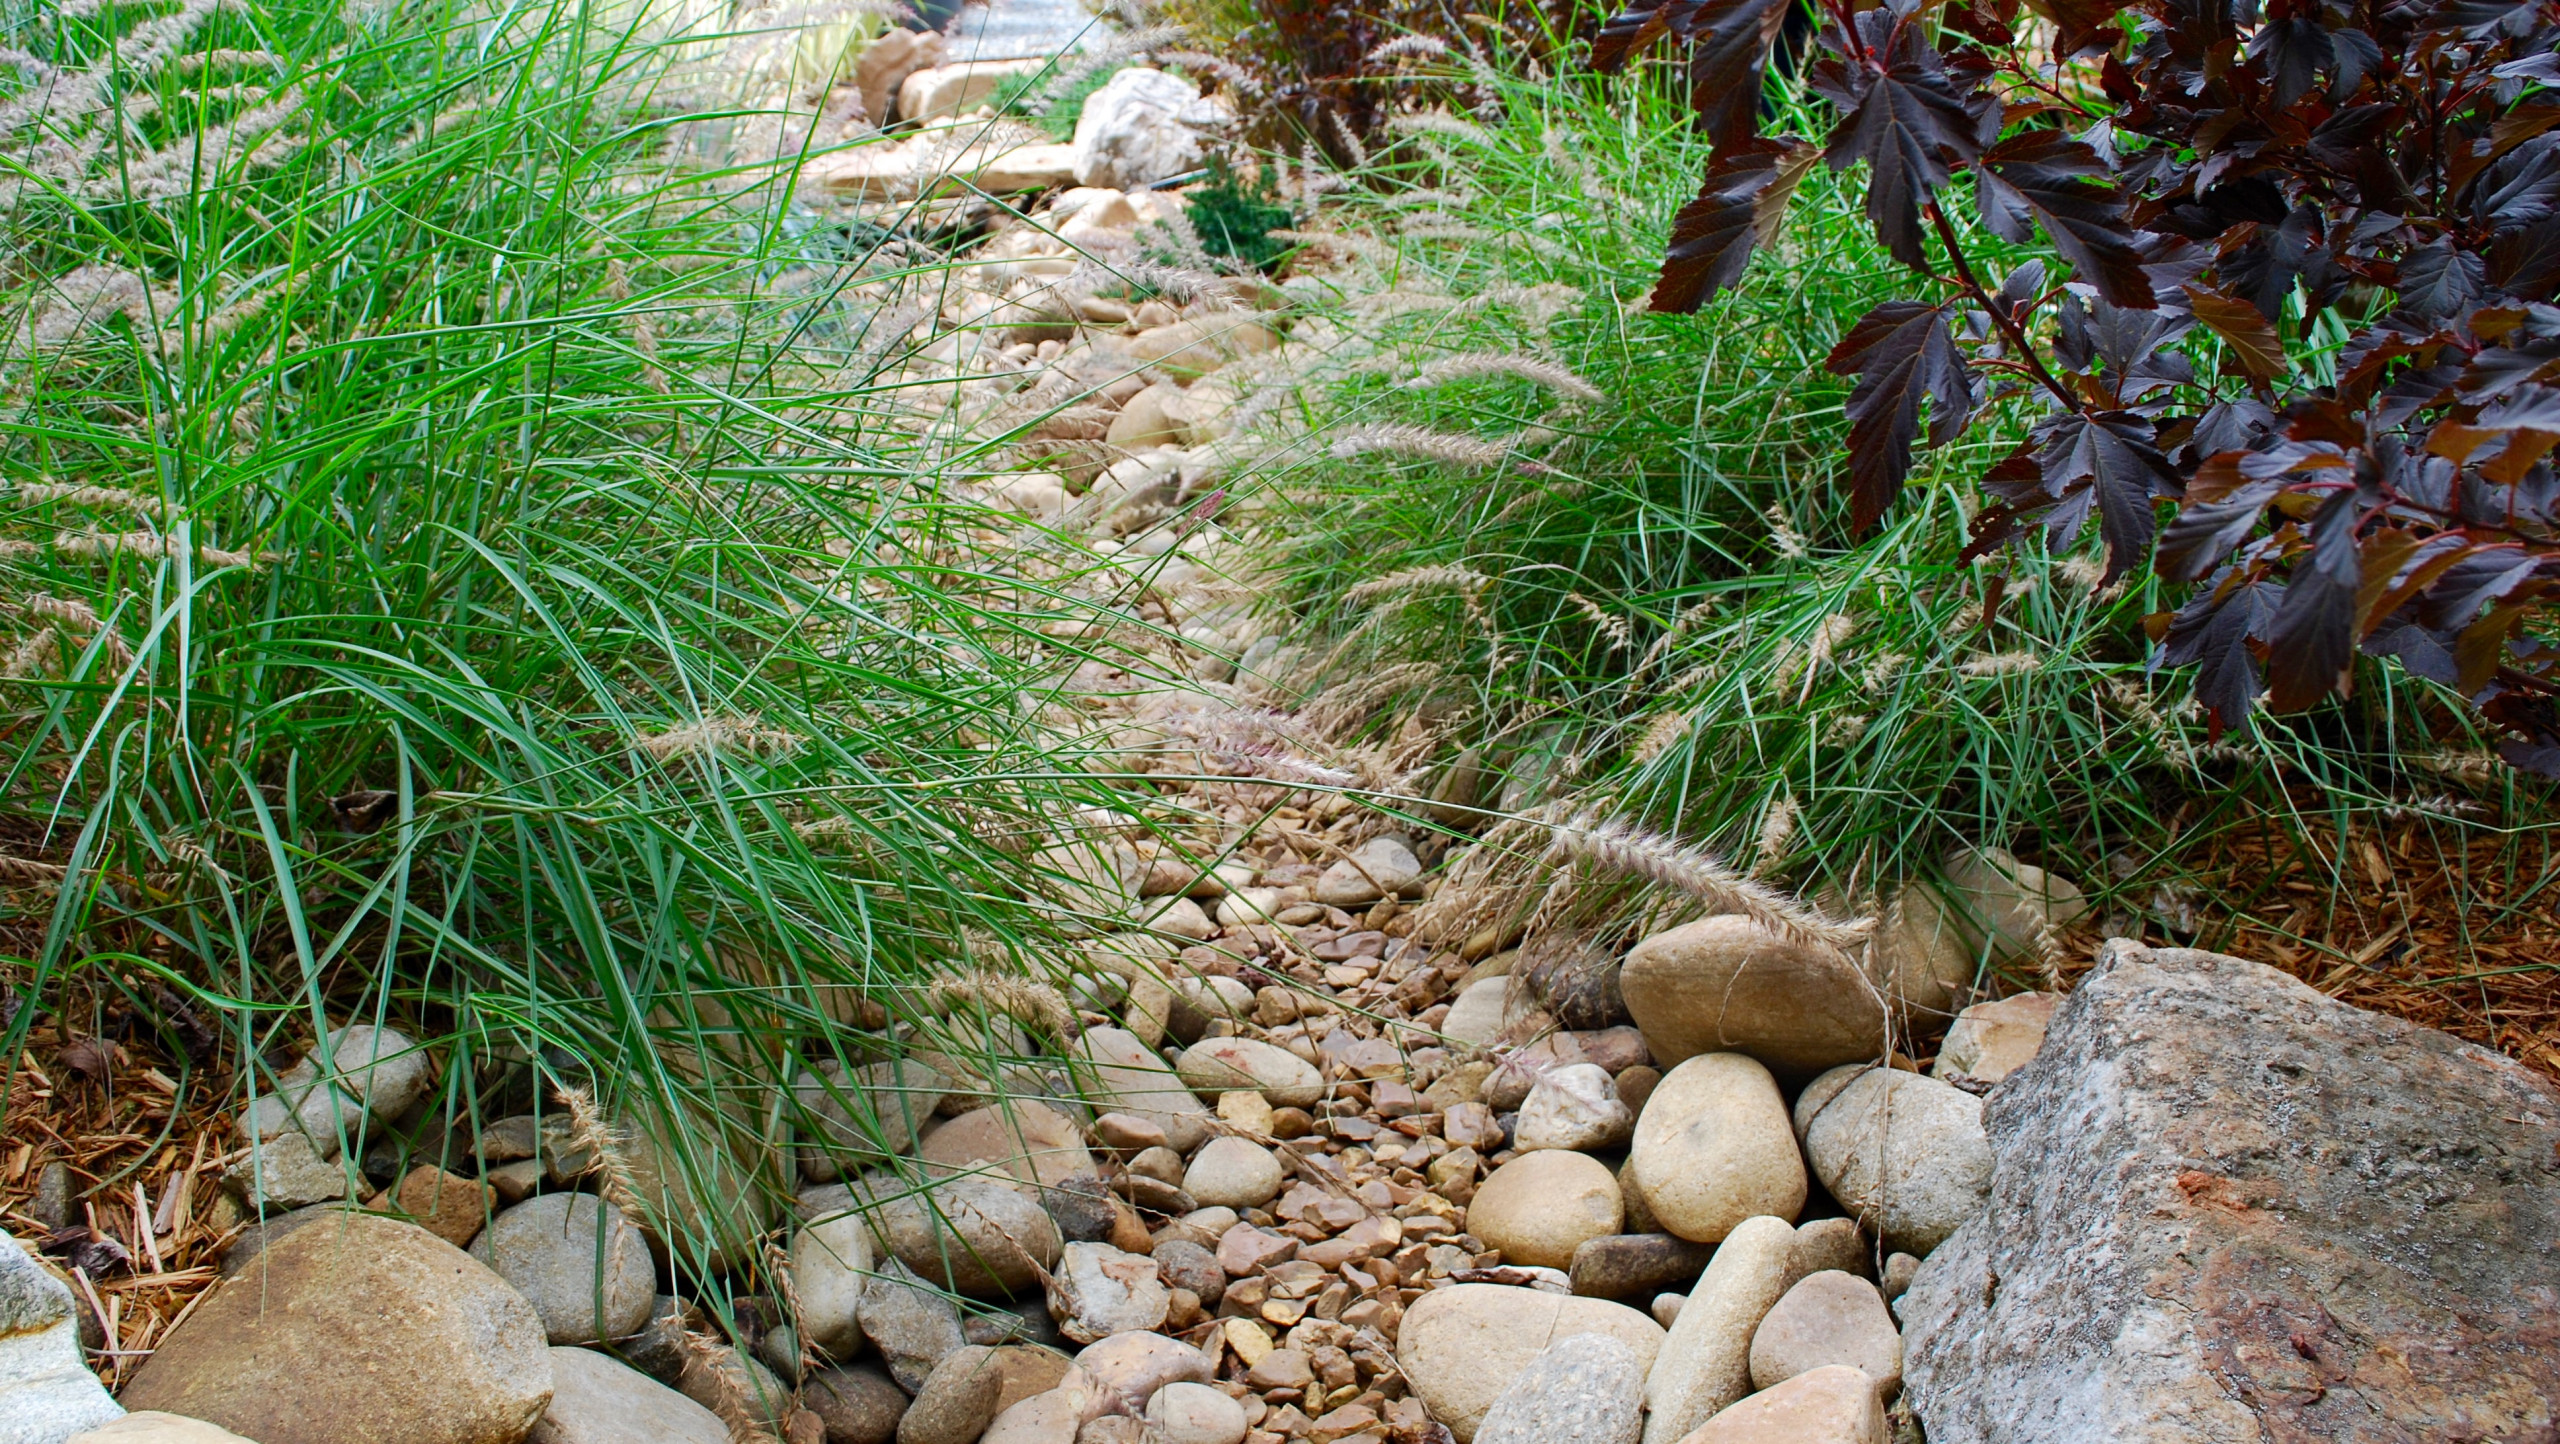 Drainage ditch-turned-meadow garden